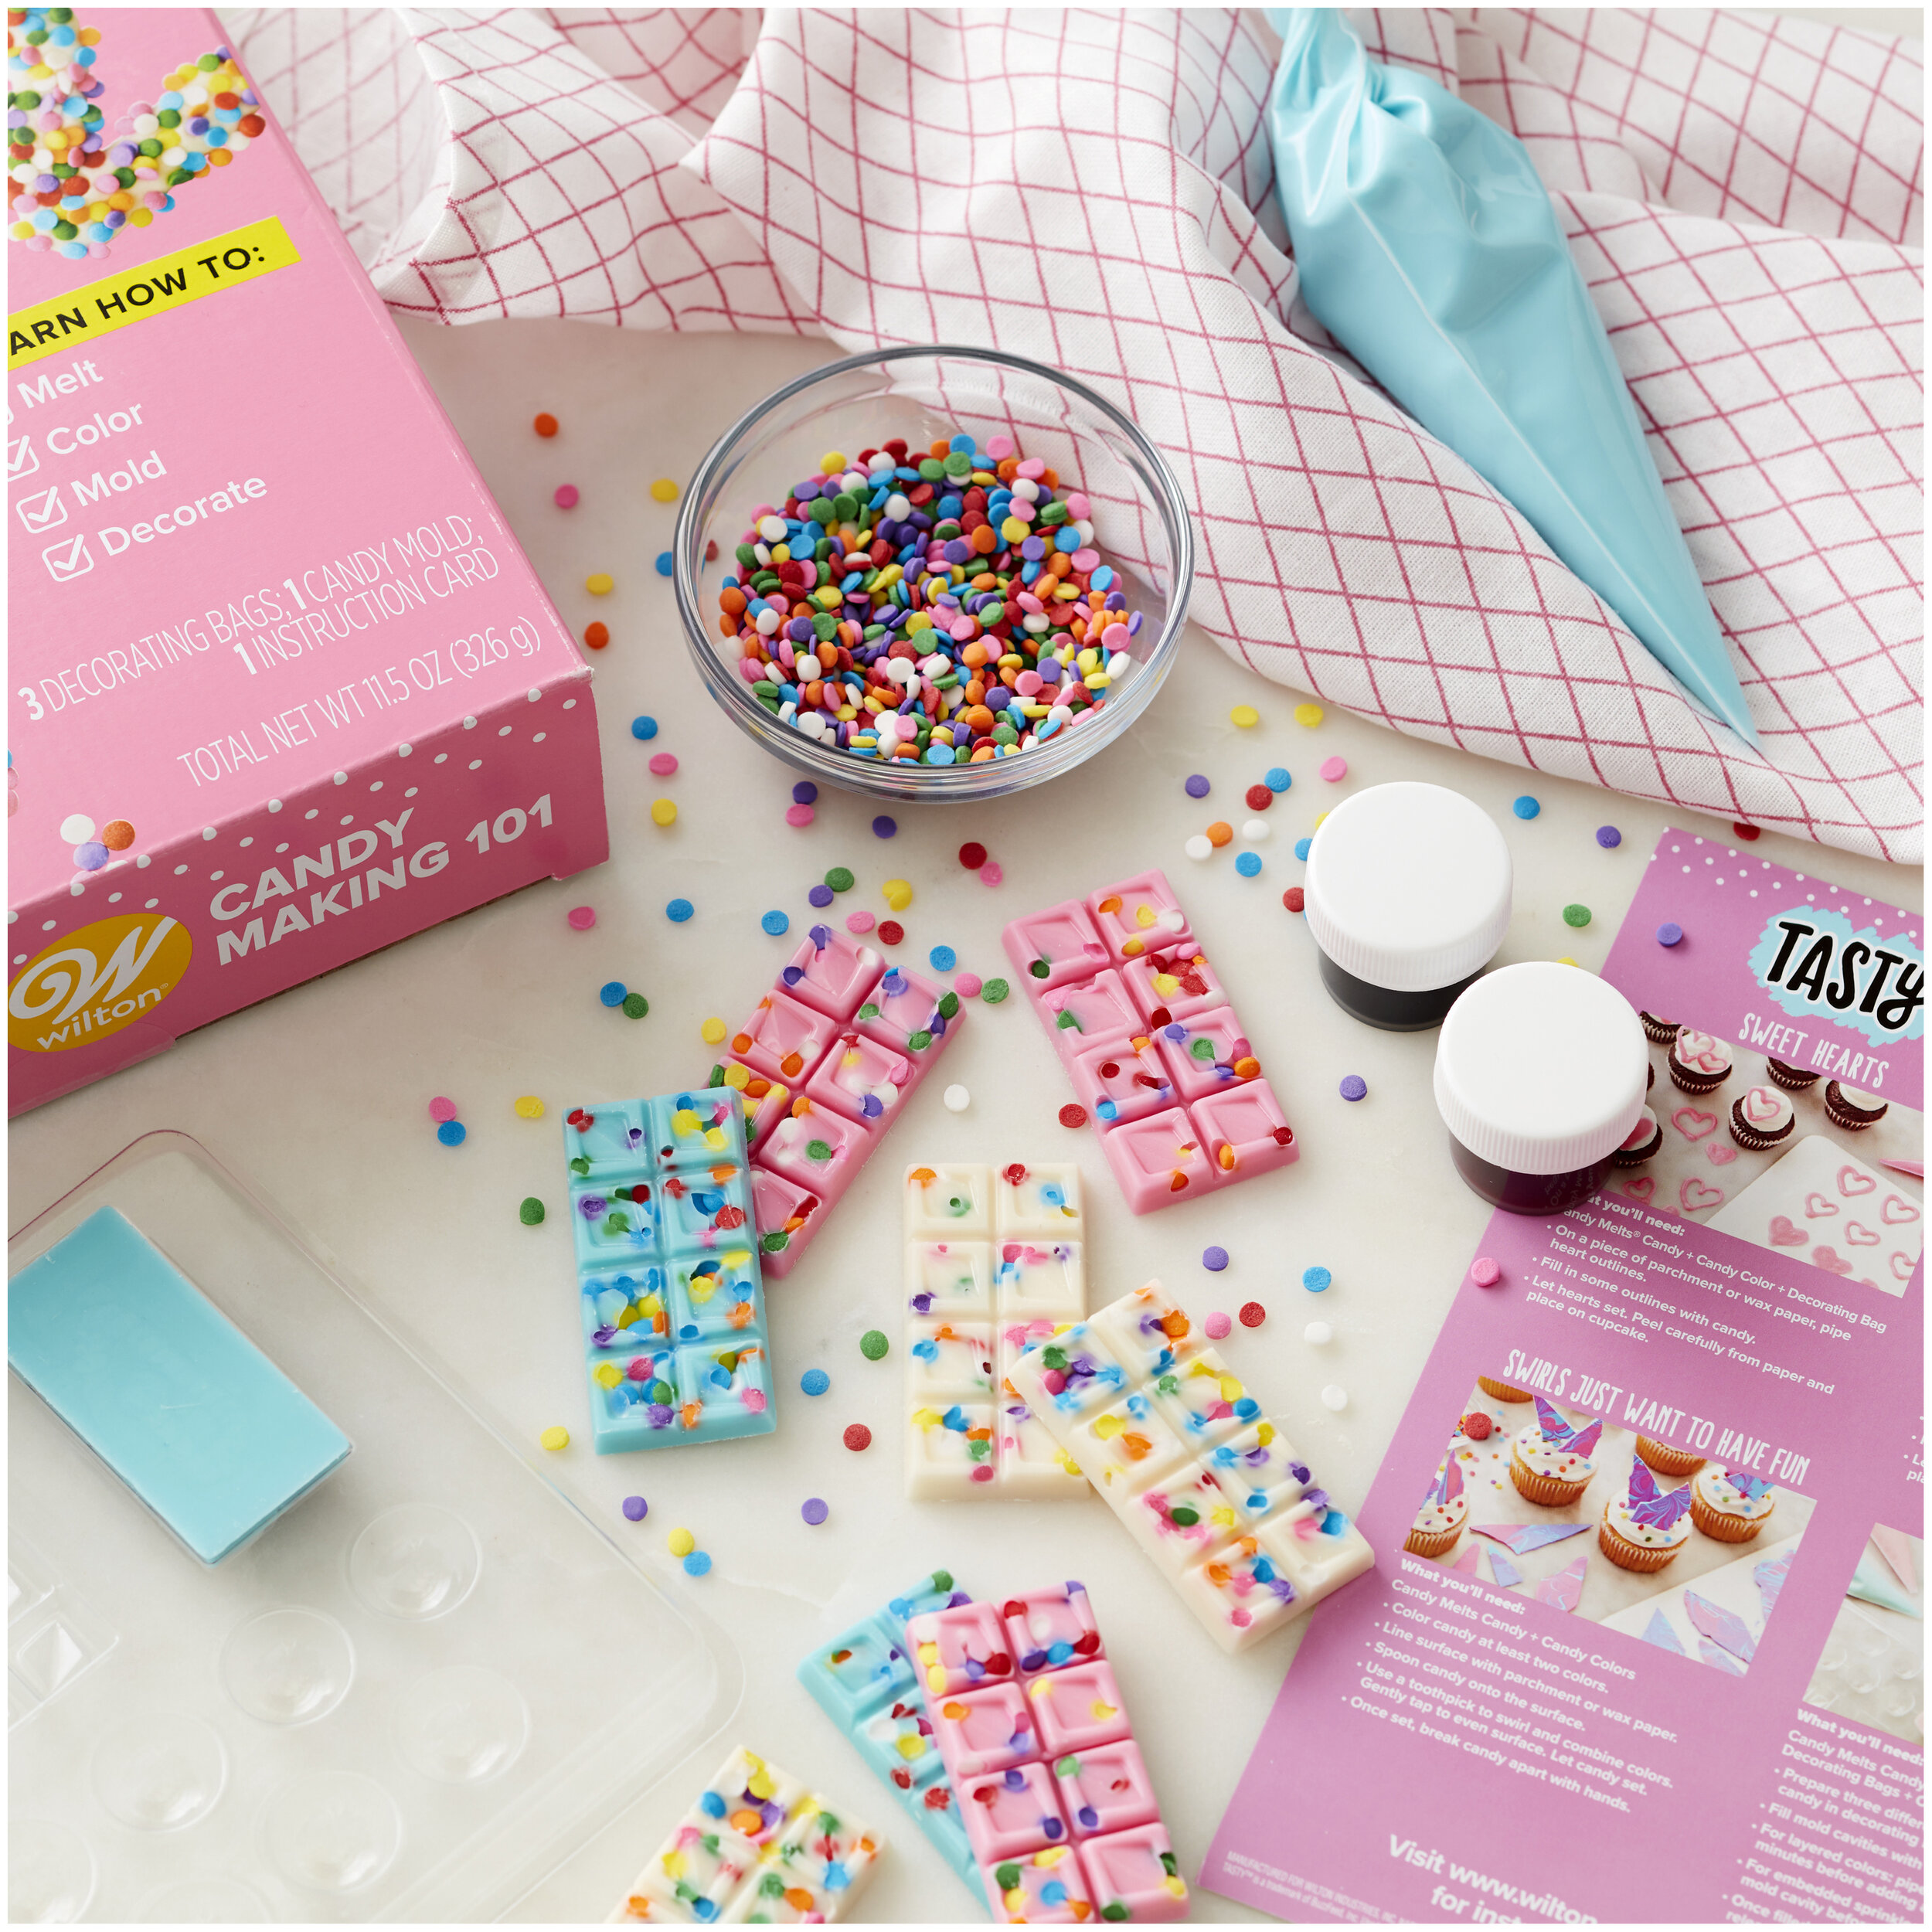 Candy Making 101 - $12.98